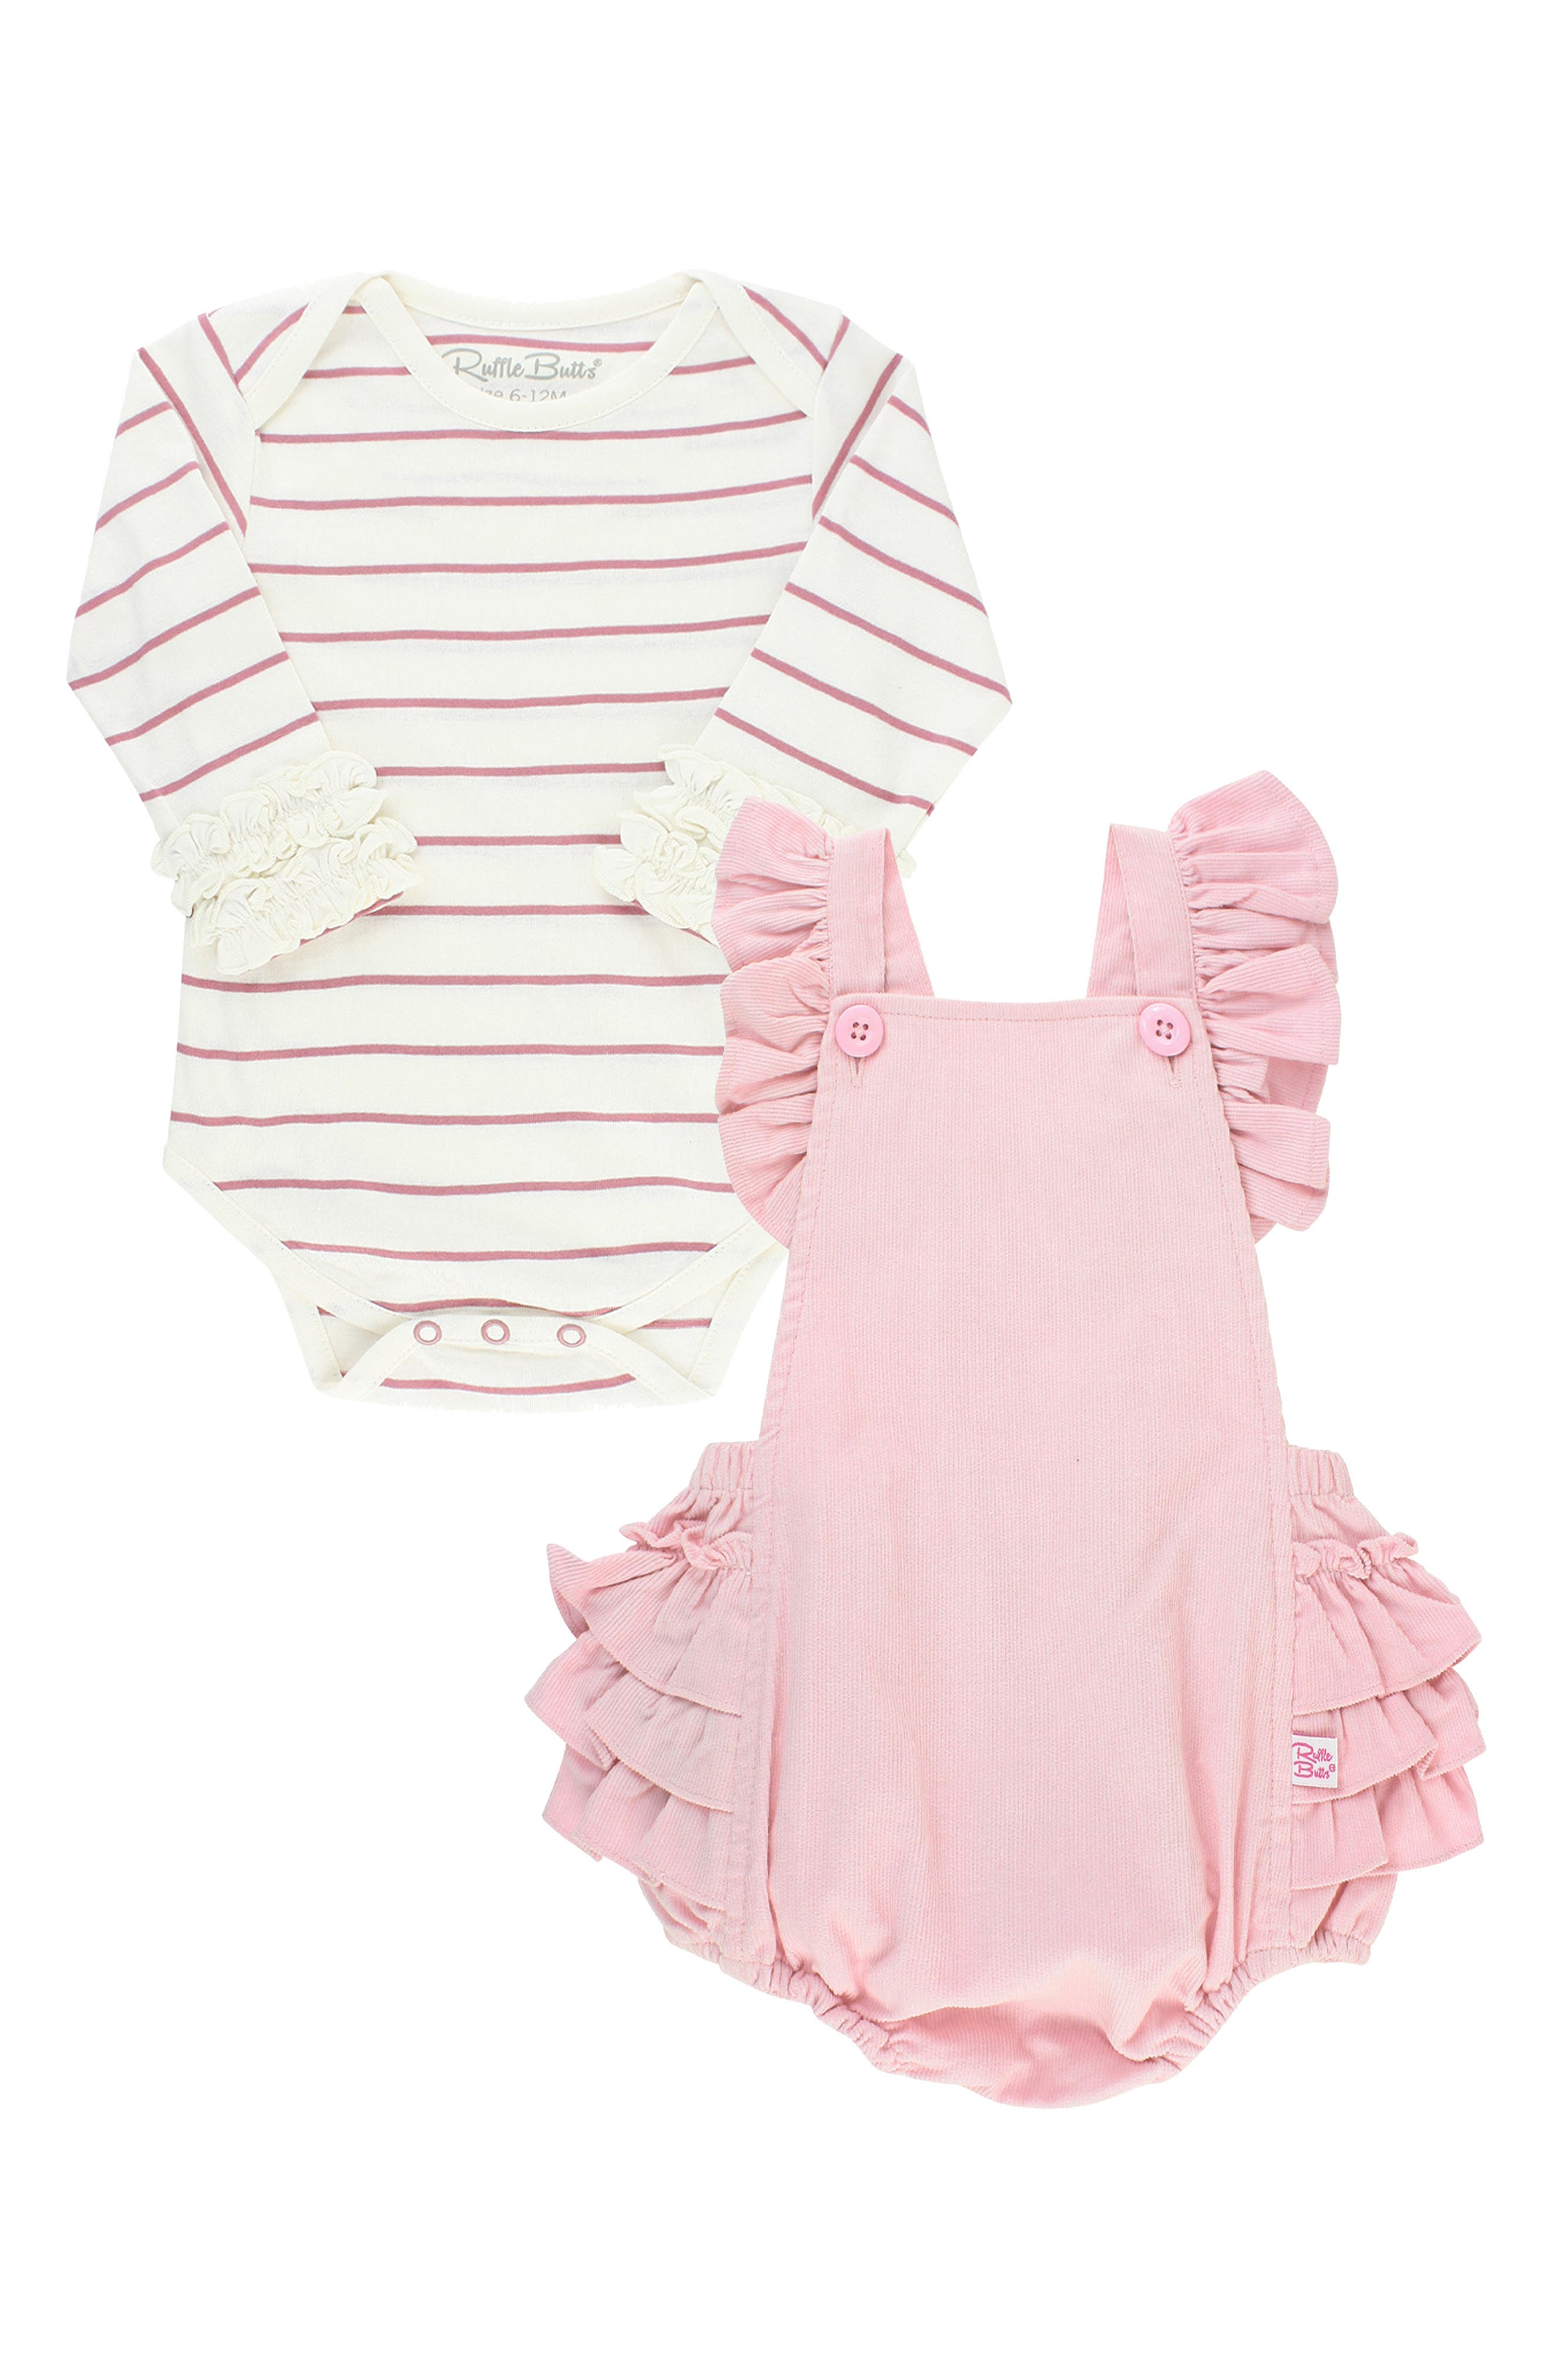 A long-sleeve bodysuit with ruffle cuffs and a pretty pinafore-inspired romper with lavish ruffles layer perfectly for an adorable season-spanning ensemble. Style Name: Rufflebutts Stripe Bodysuit & Pinafore Romper Set (Baby). Style Number: 6118813. Available in stores.